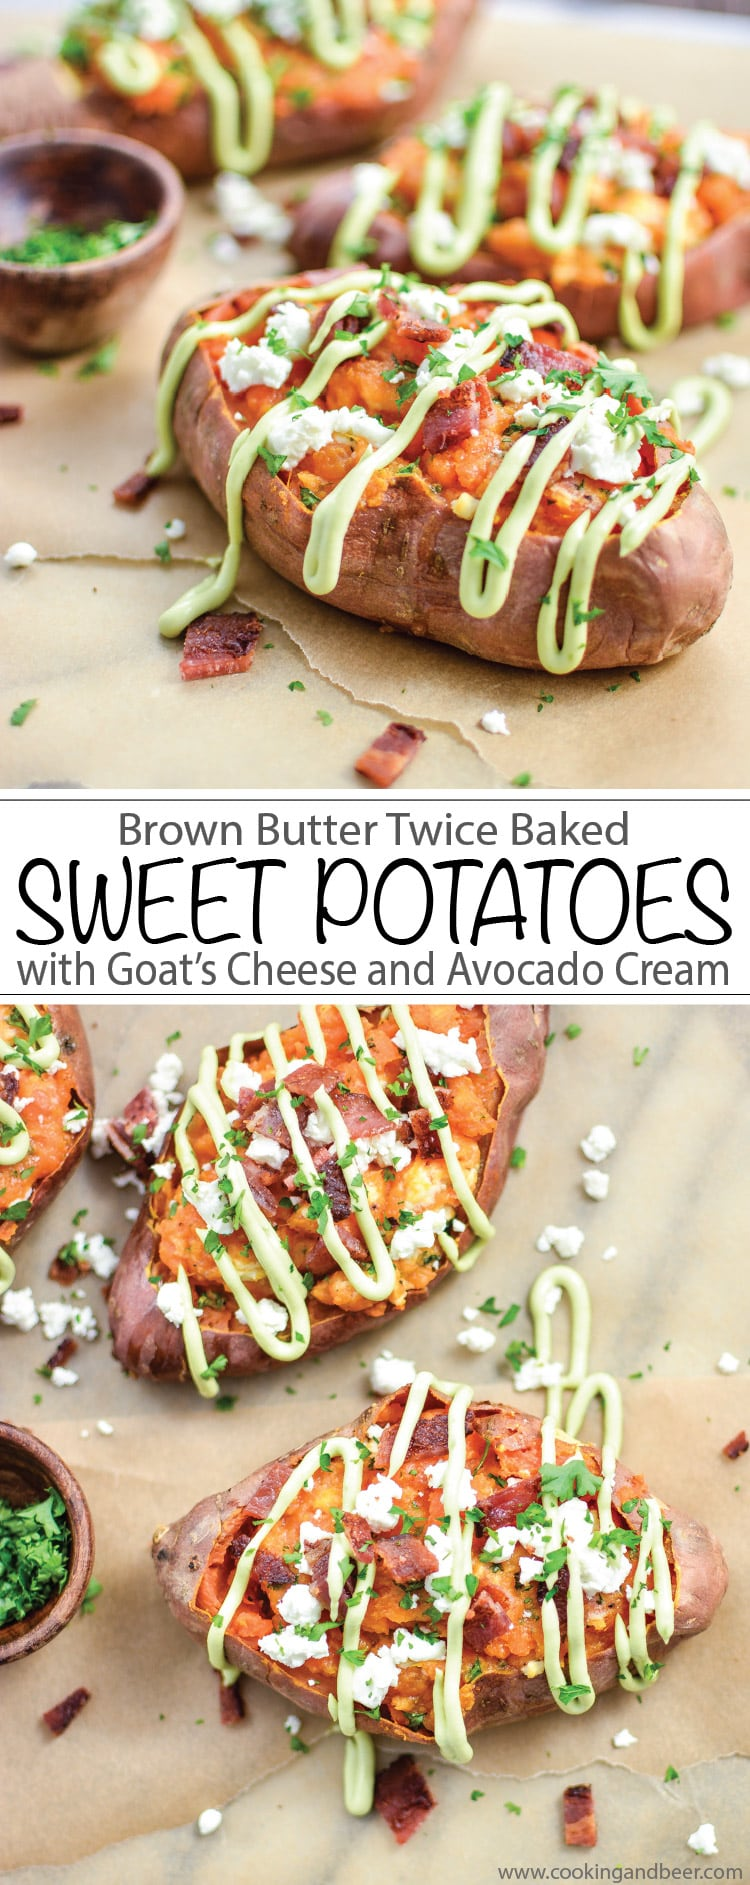 Brown Butter Twice Baked Sweet Potatoes